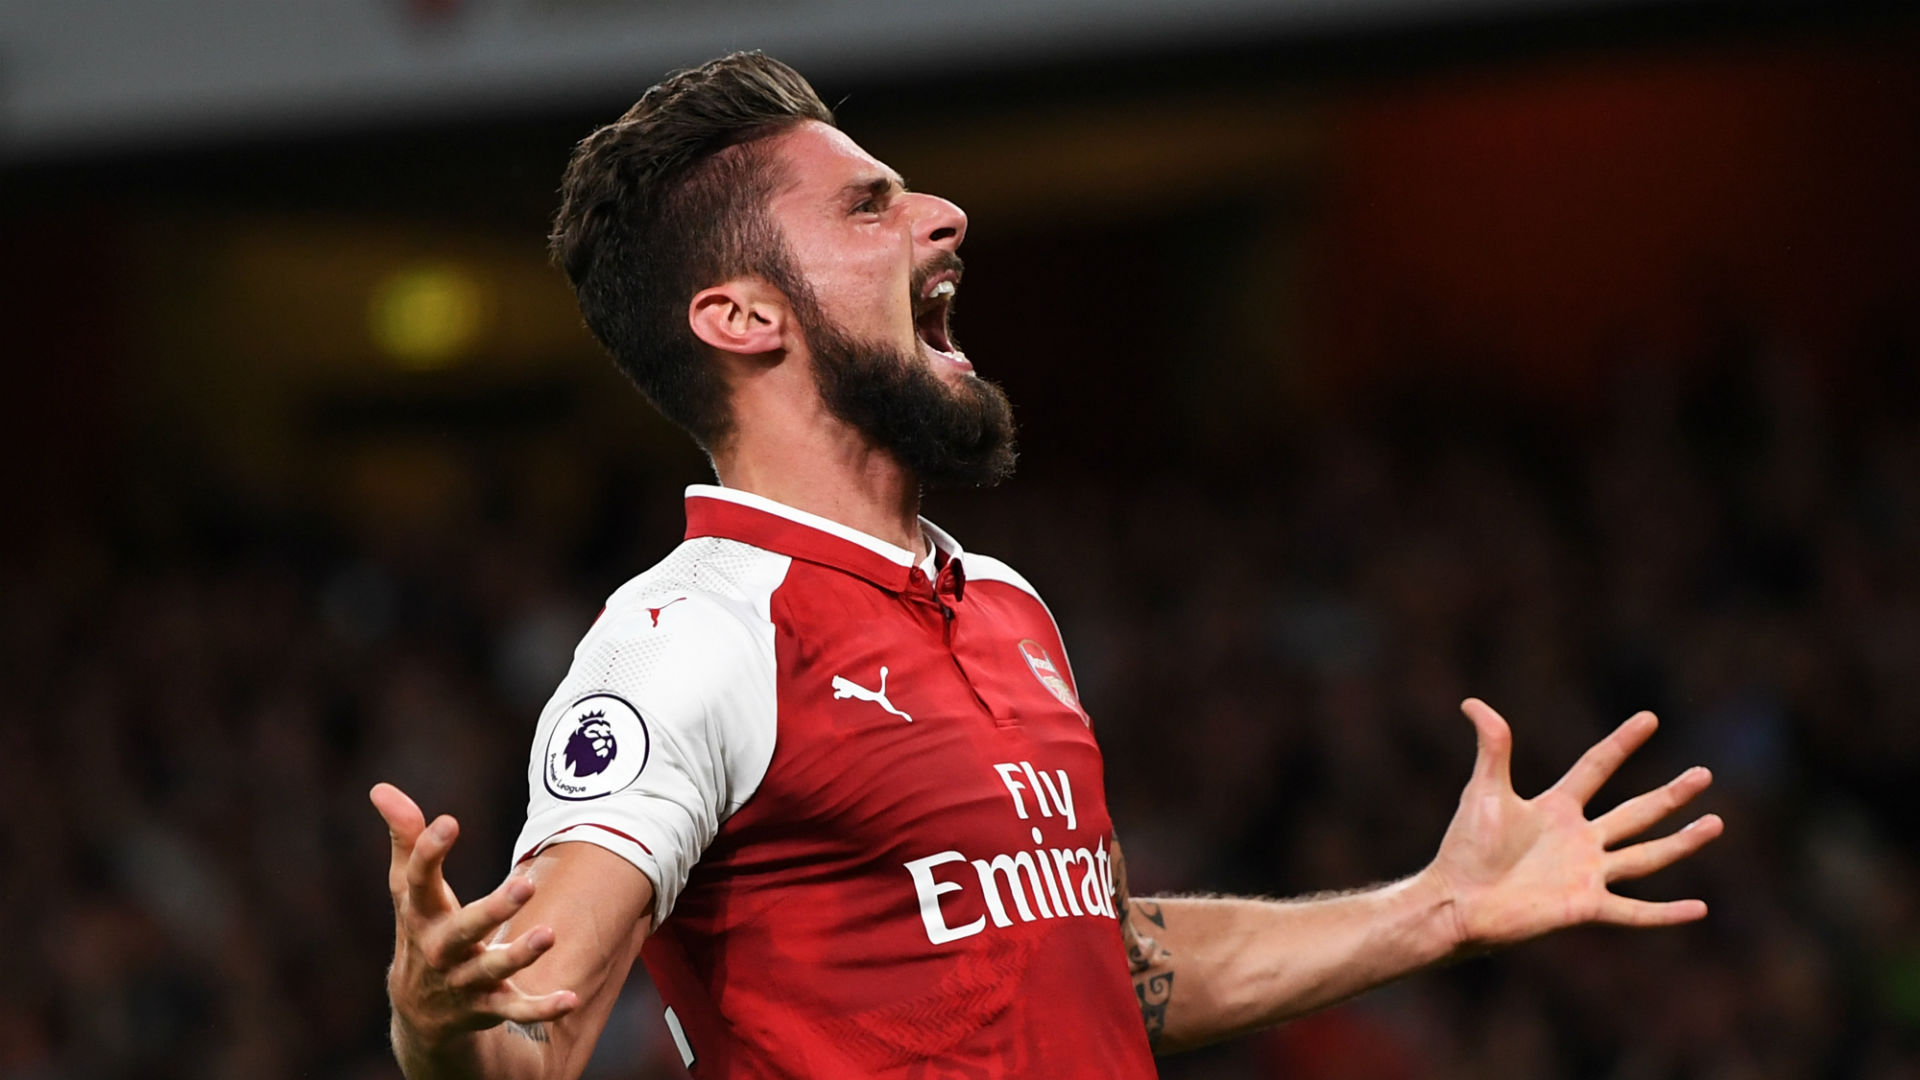 Super-sub Giroud settles thrilling Premier League opener for Arsenal